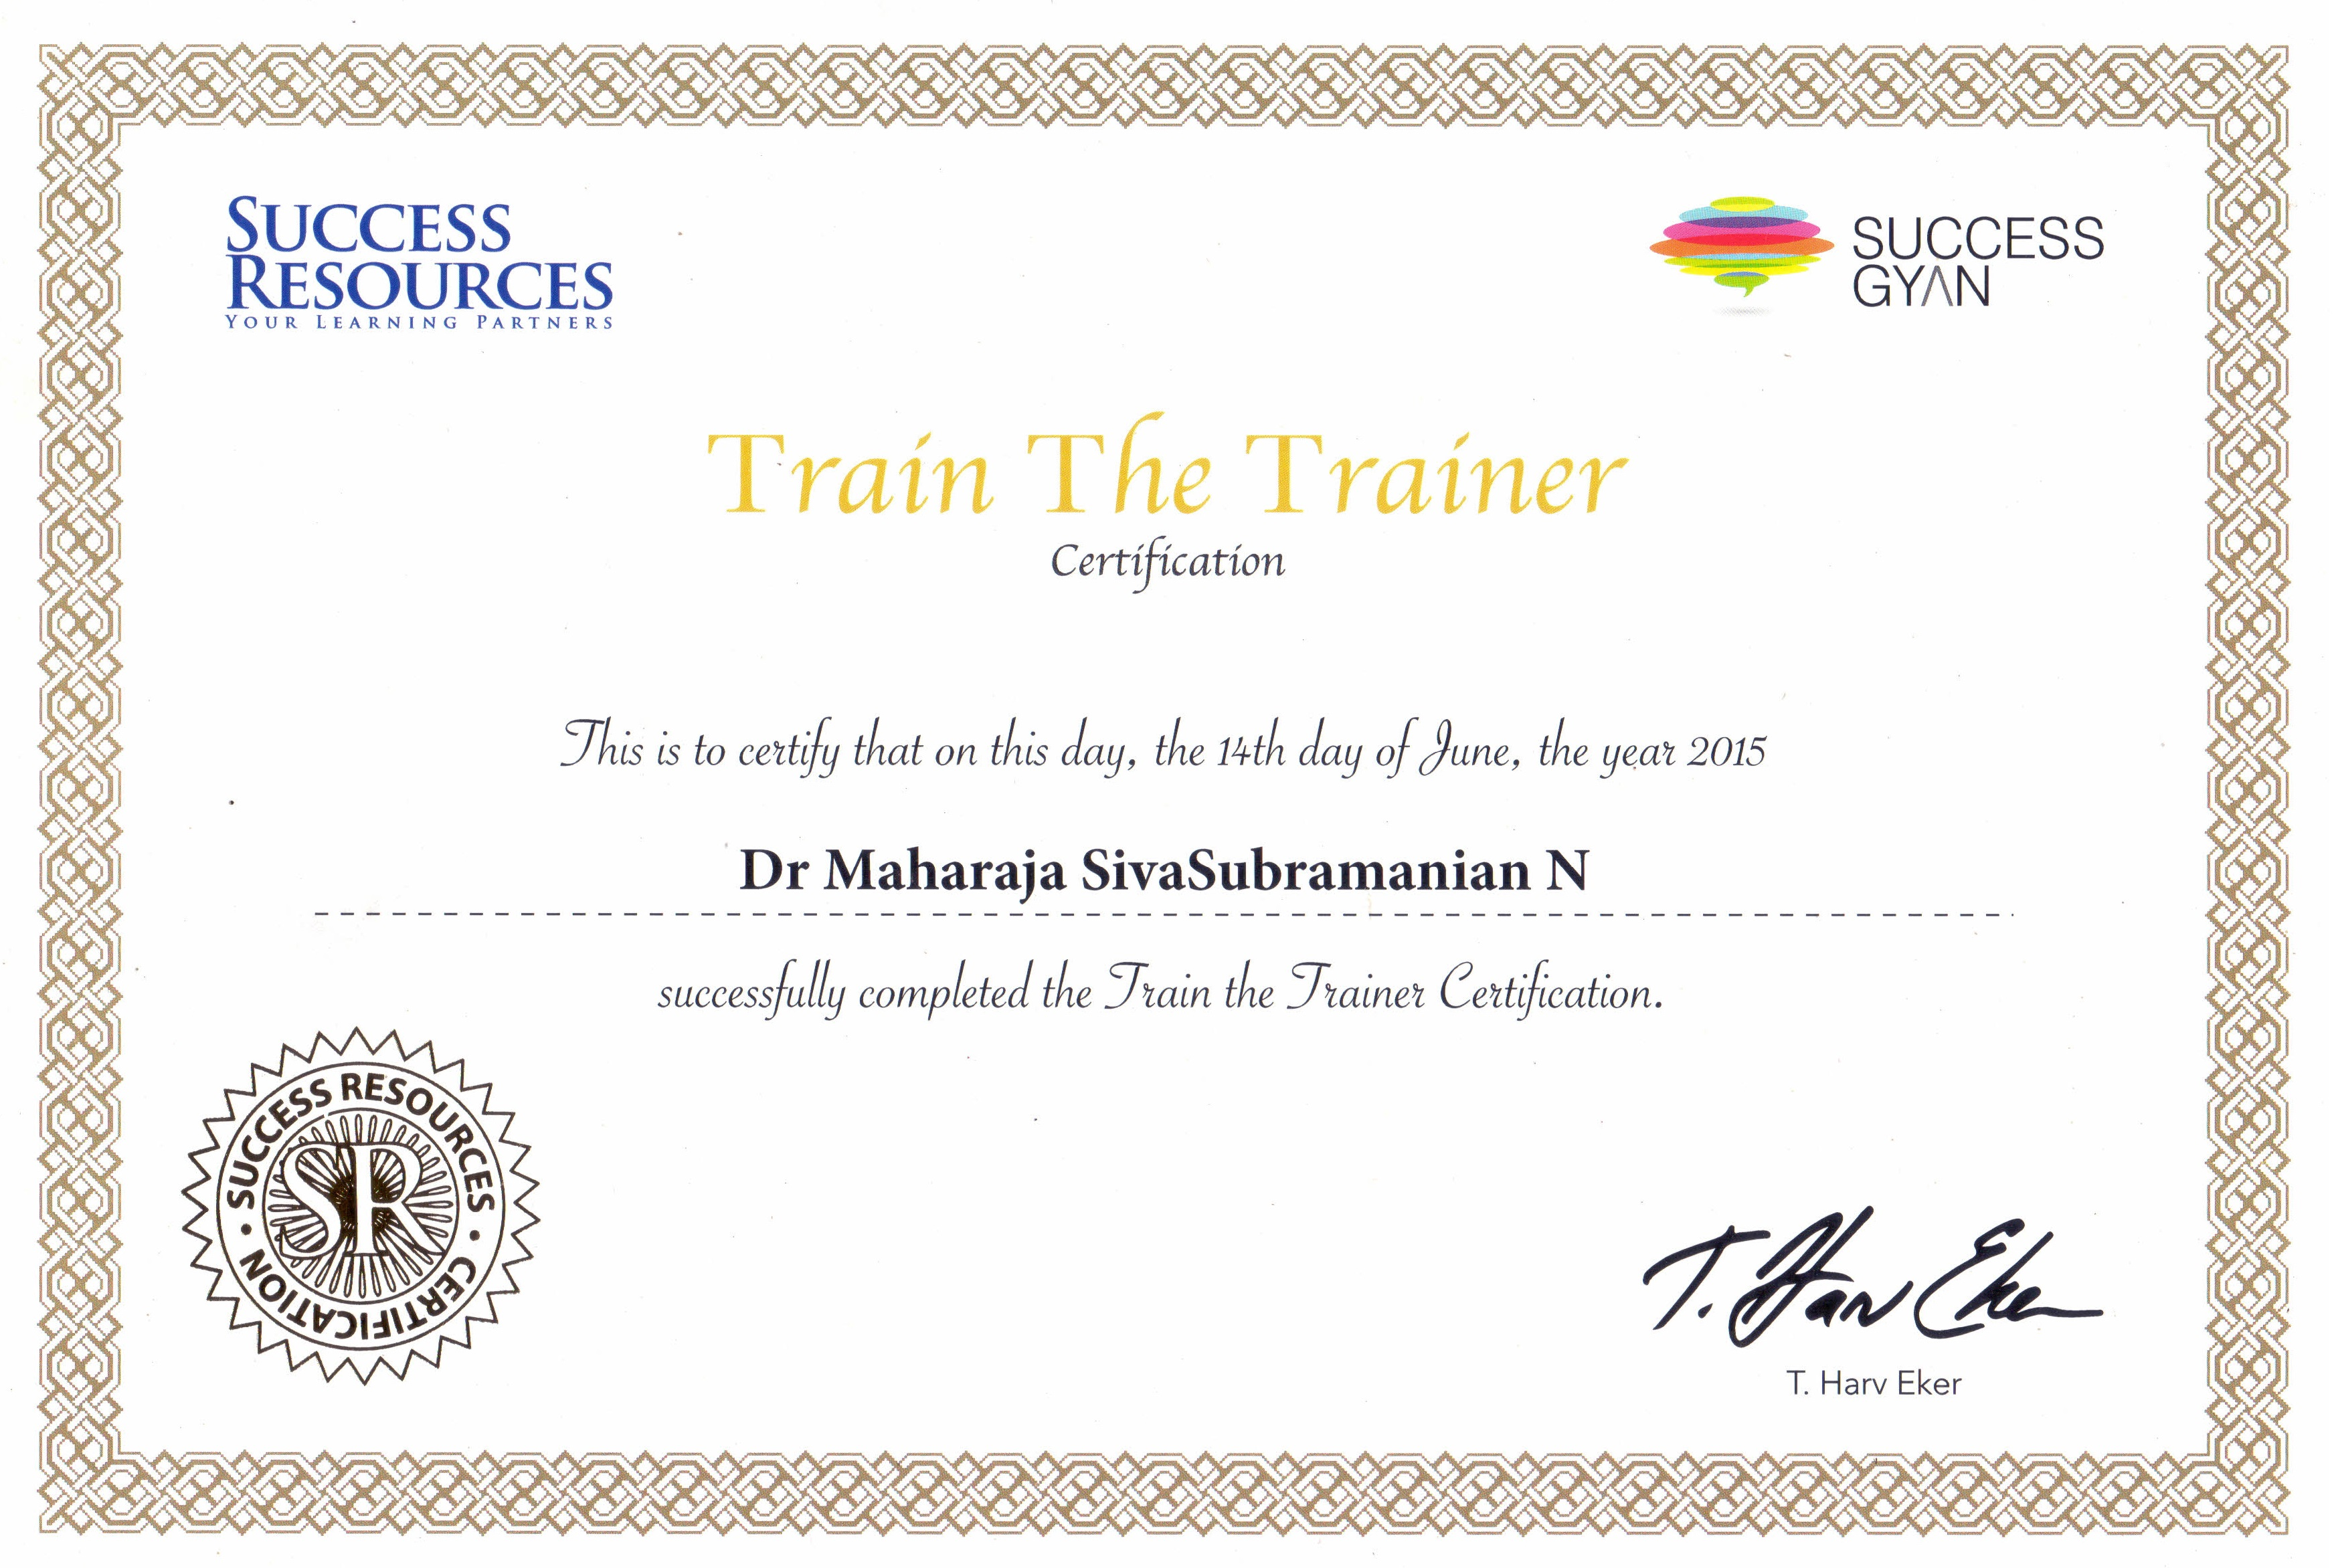 Dr Maharaja SivaSubramanian N. My Train the Trainer Certification from Success Resources.